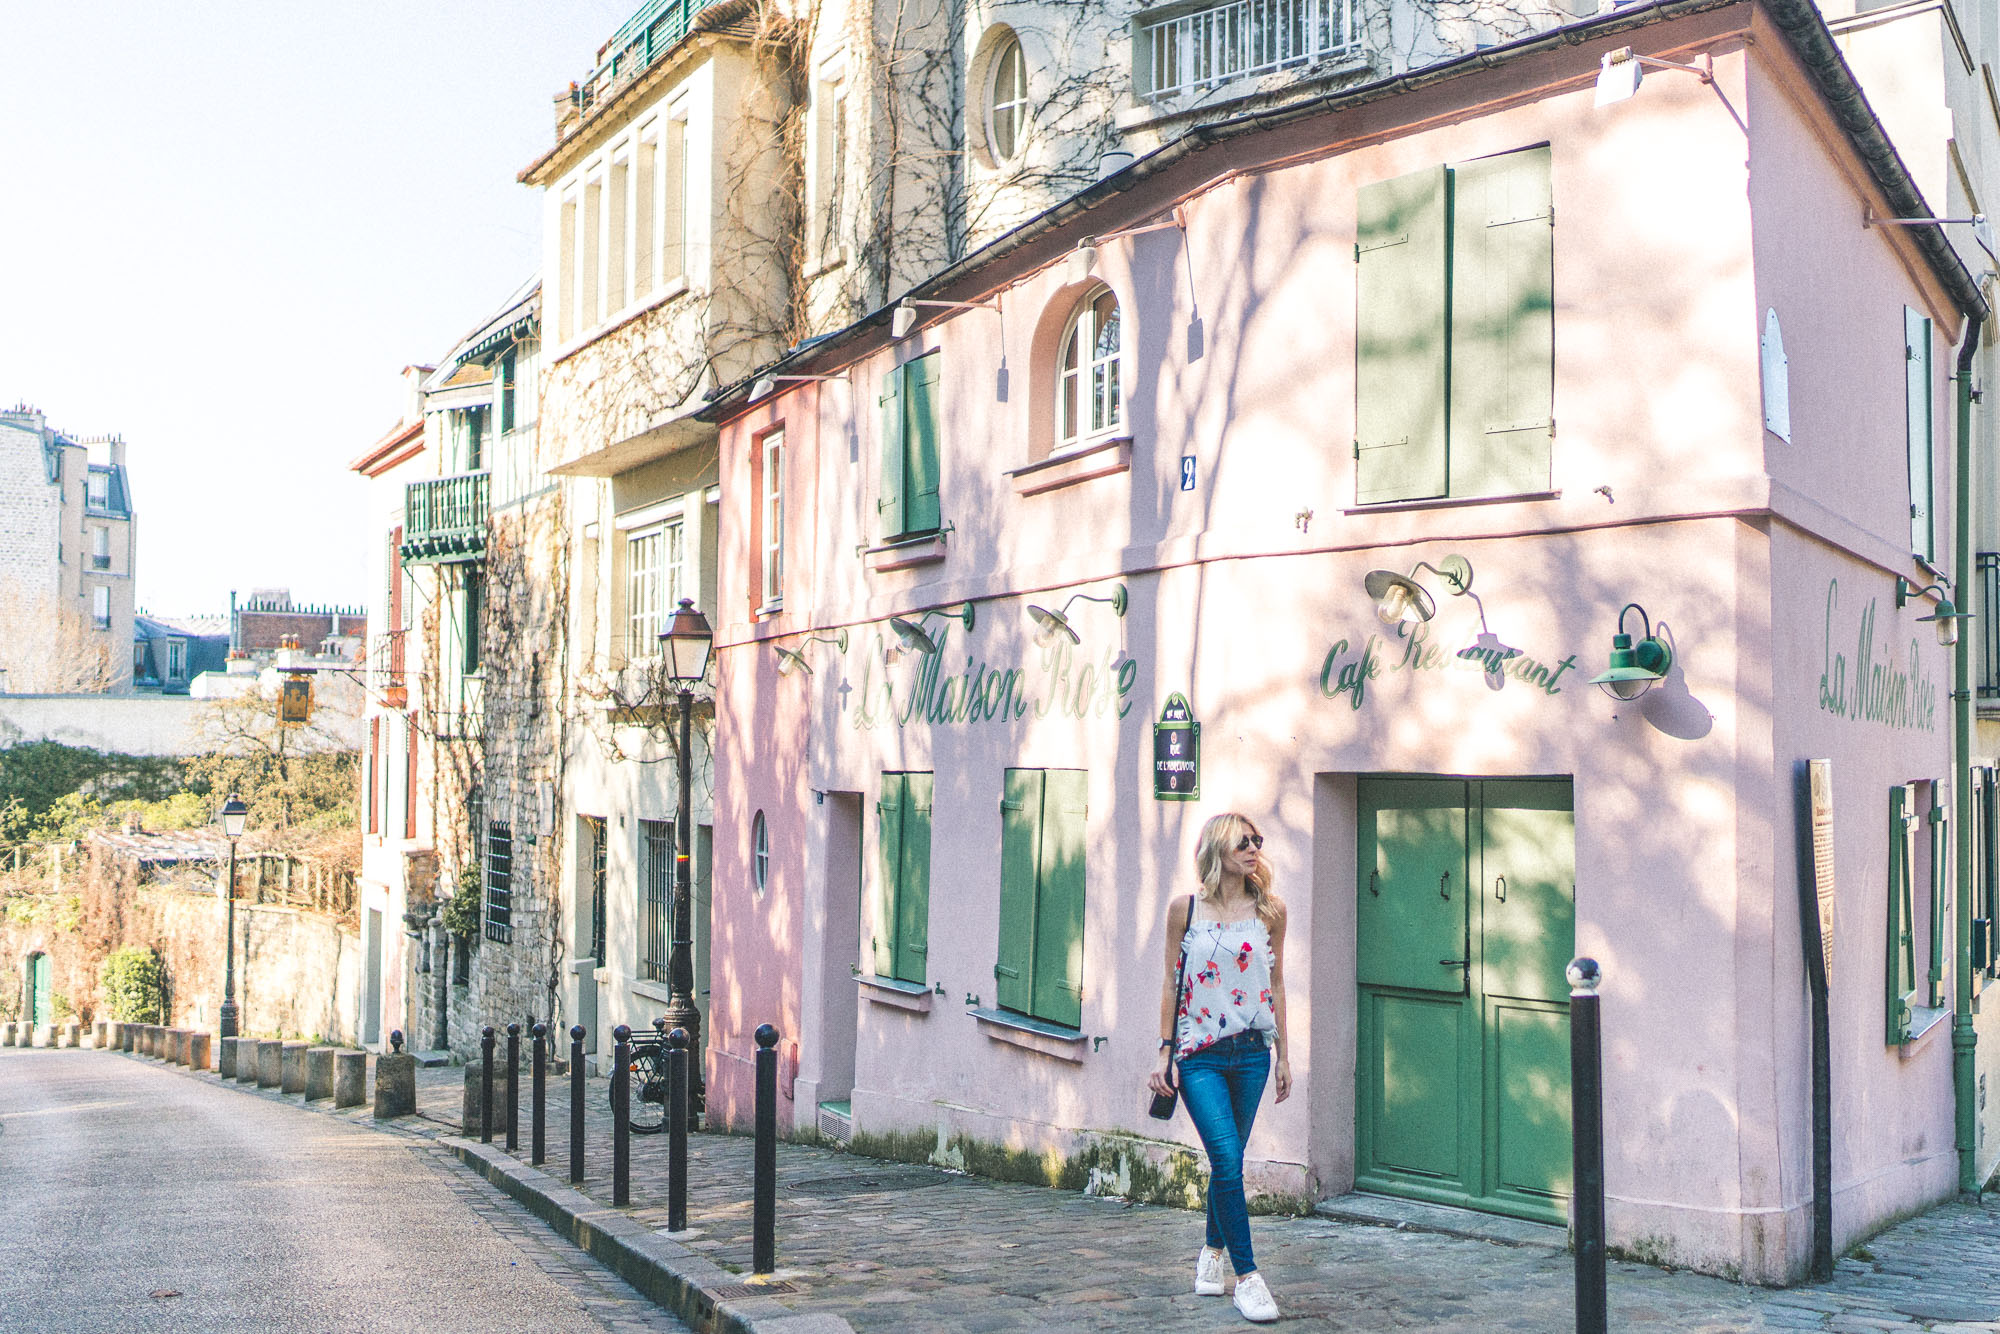 Montmartre's La Maison Rose - Best Photo spots in Paris - Complete Paris Travel Guide